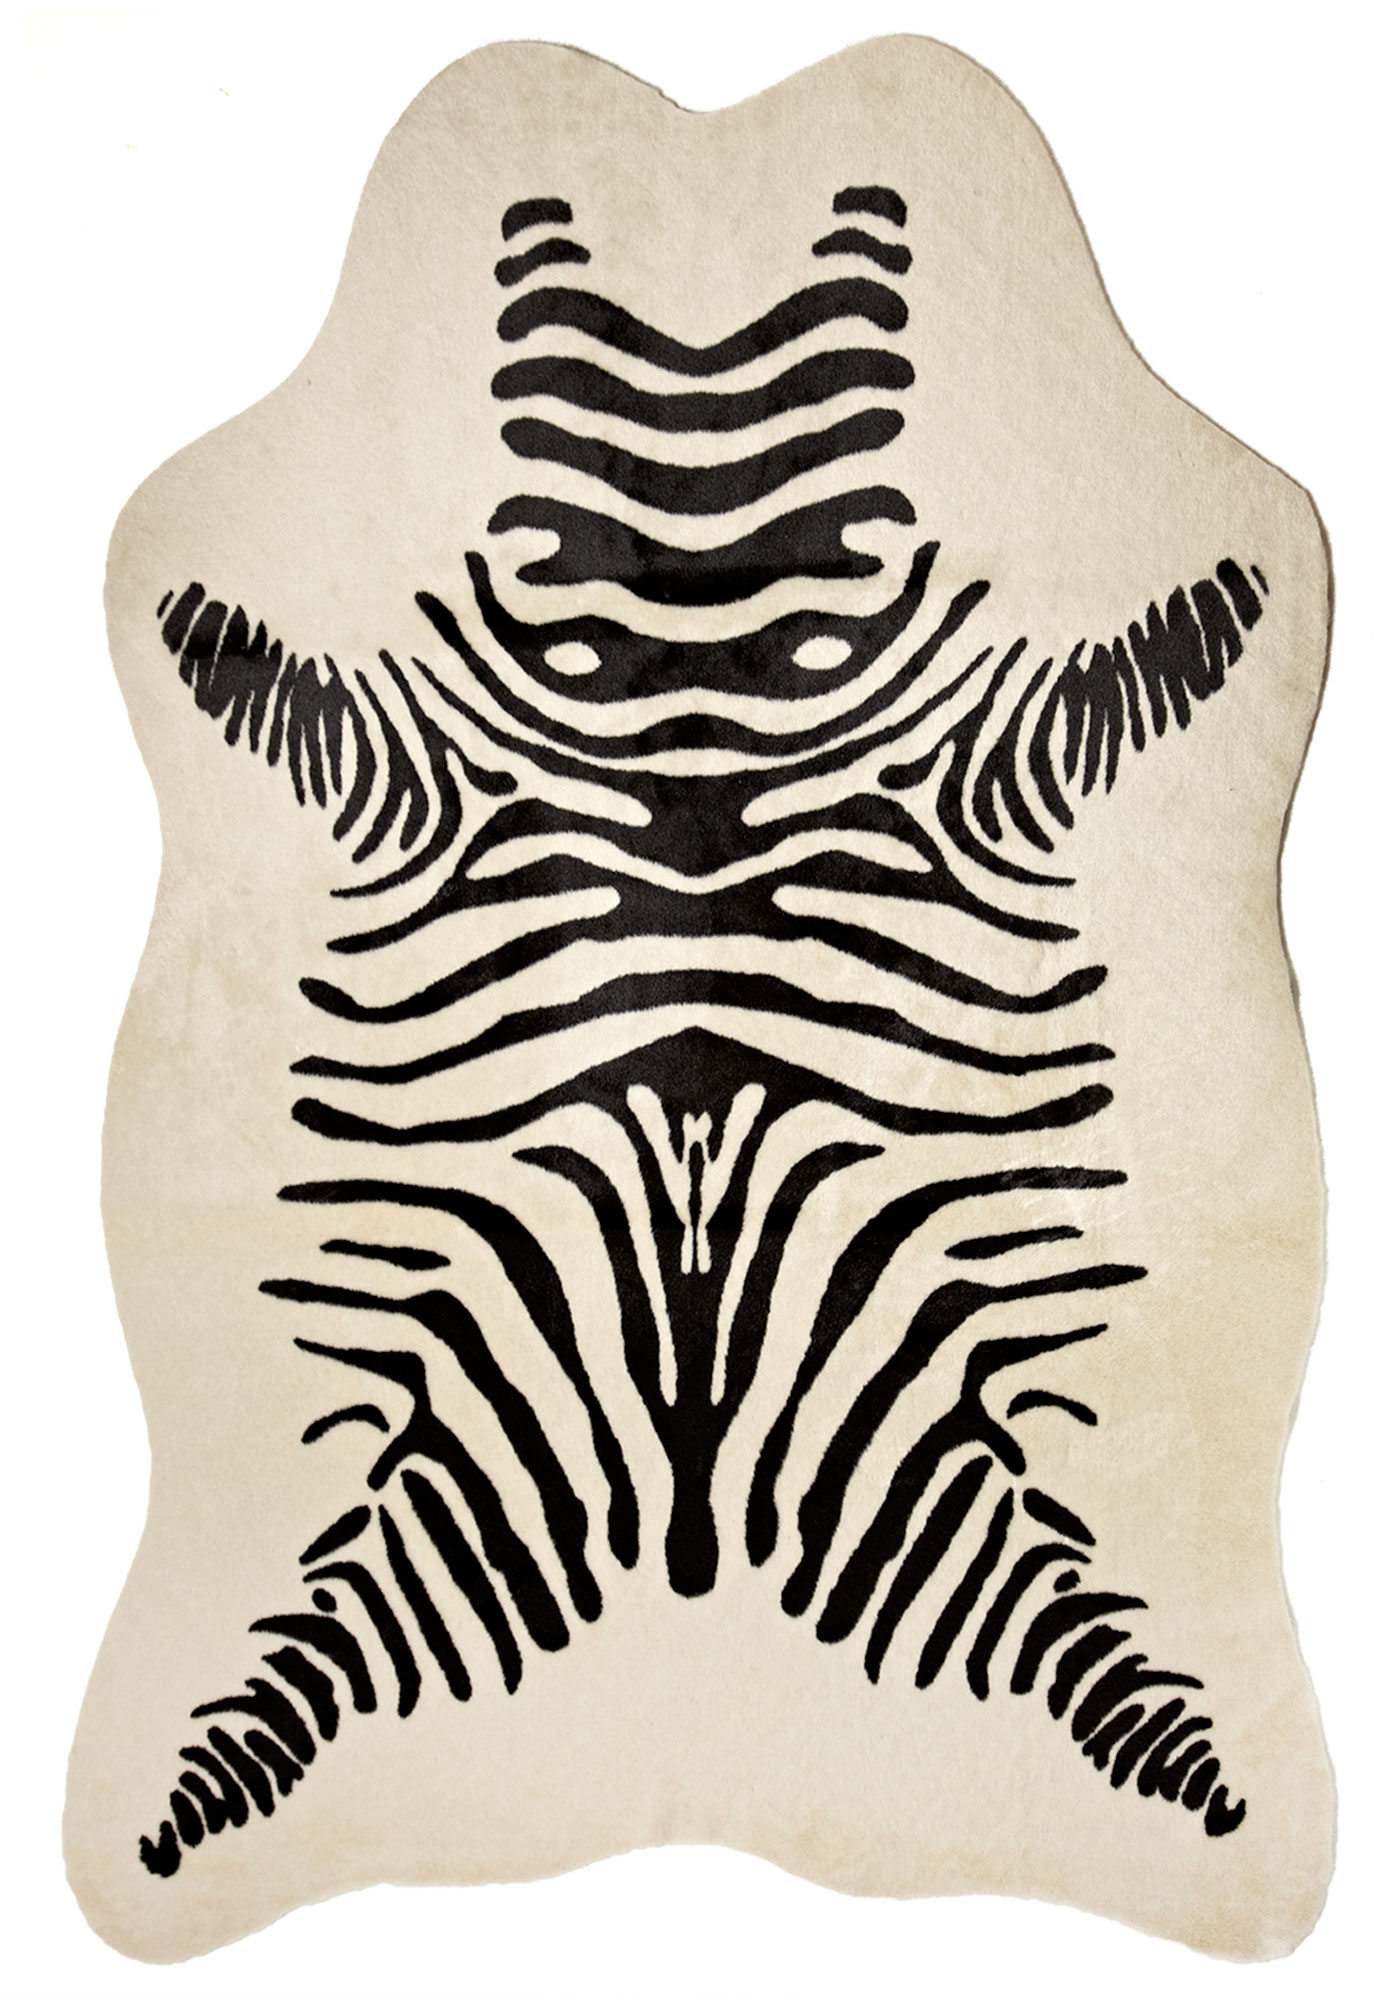 Beautiful zebra rug for floorings and rugs ideas with zebra skin rug